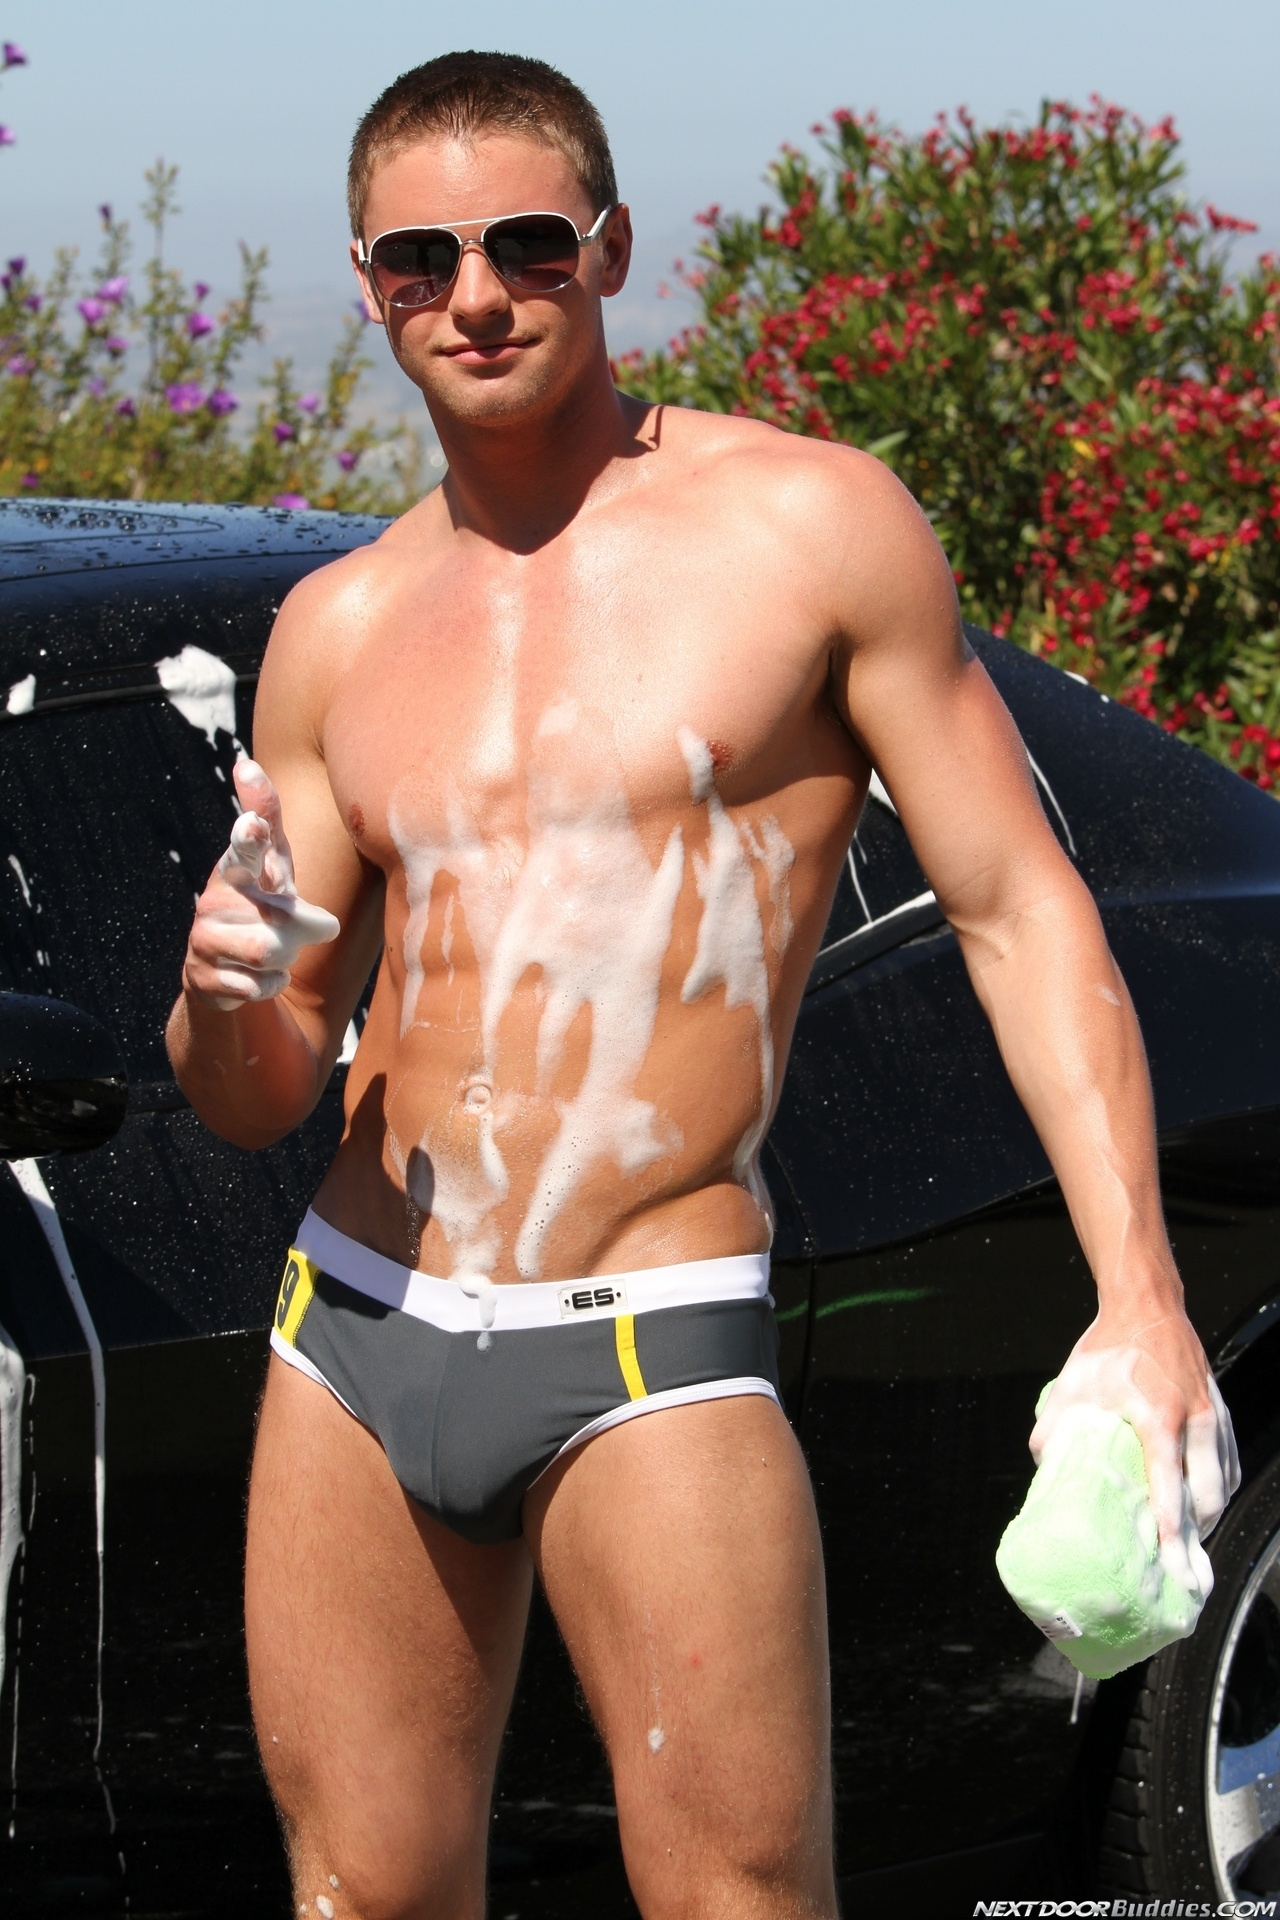 Marcus-Mojo-Brody-Wilder-Johnny-Torque-Rod-Daily-Donny-Wright-washing-a-car-in-Suds-Studs-Next-Door-Studios-32